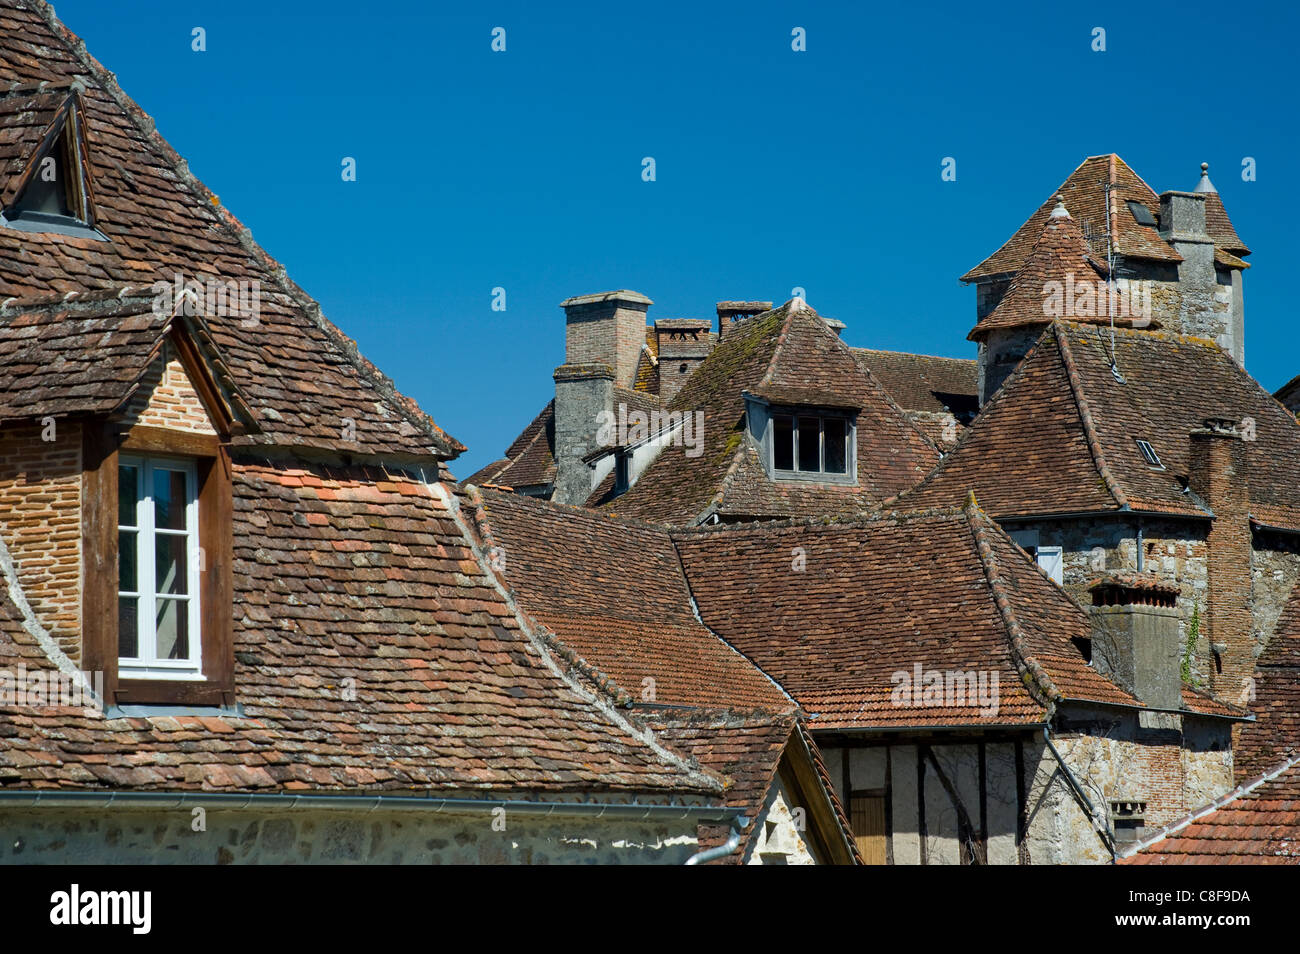 Rooftops in village of Carennac and typical Quercy architecture on the banks of the Dordogne River, Dordogne, France - Stock Image